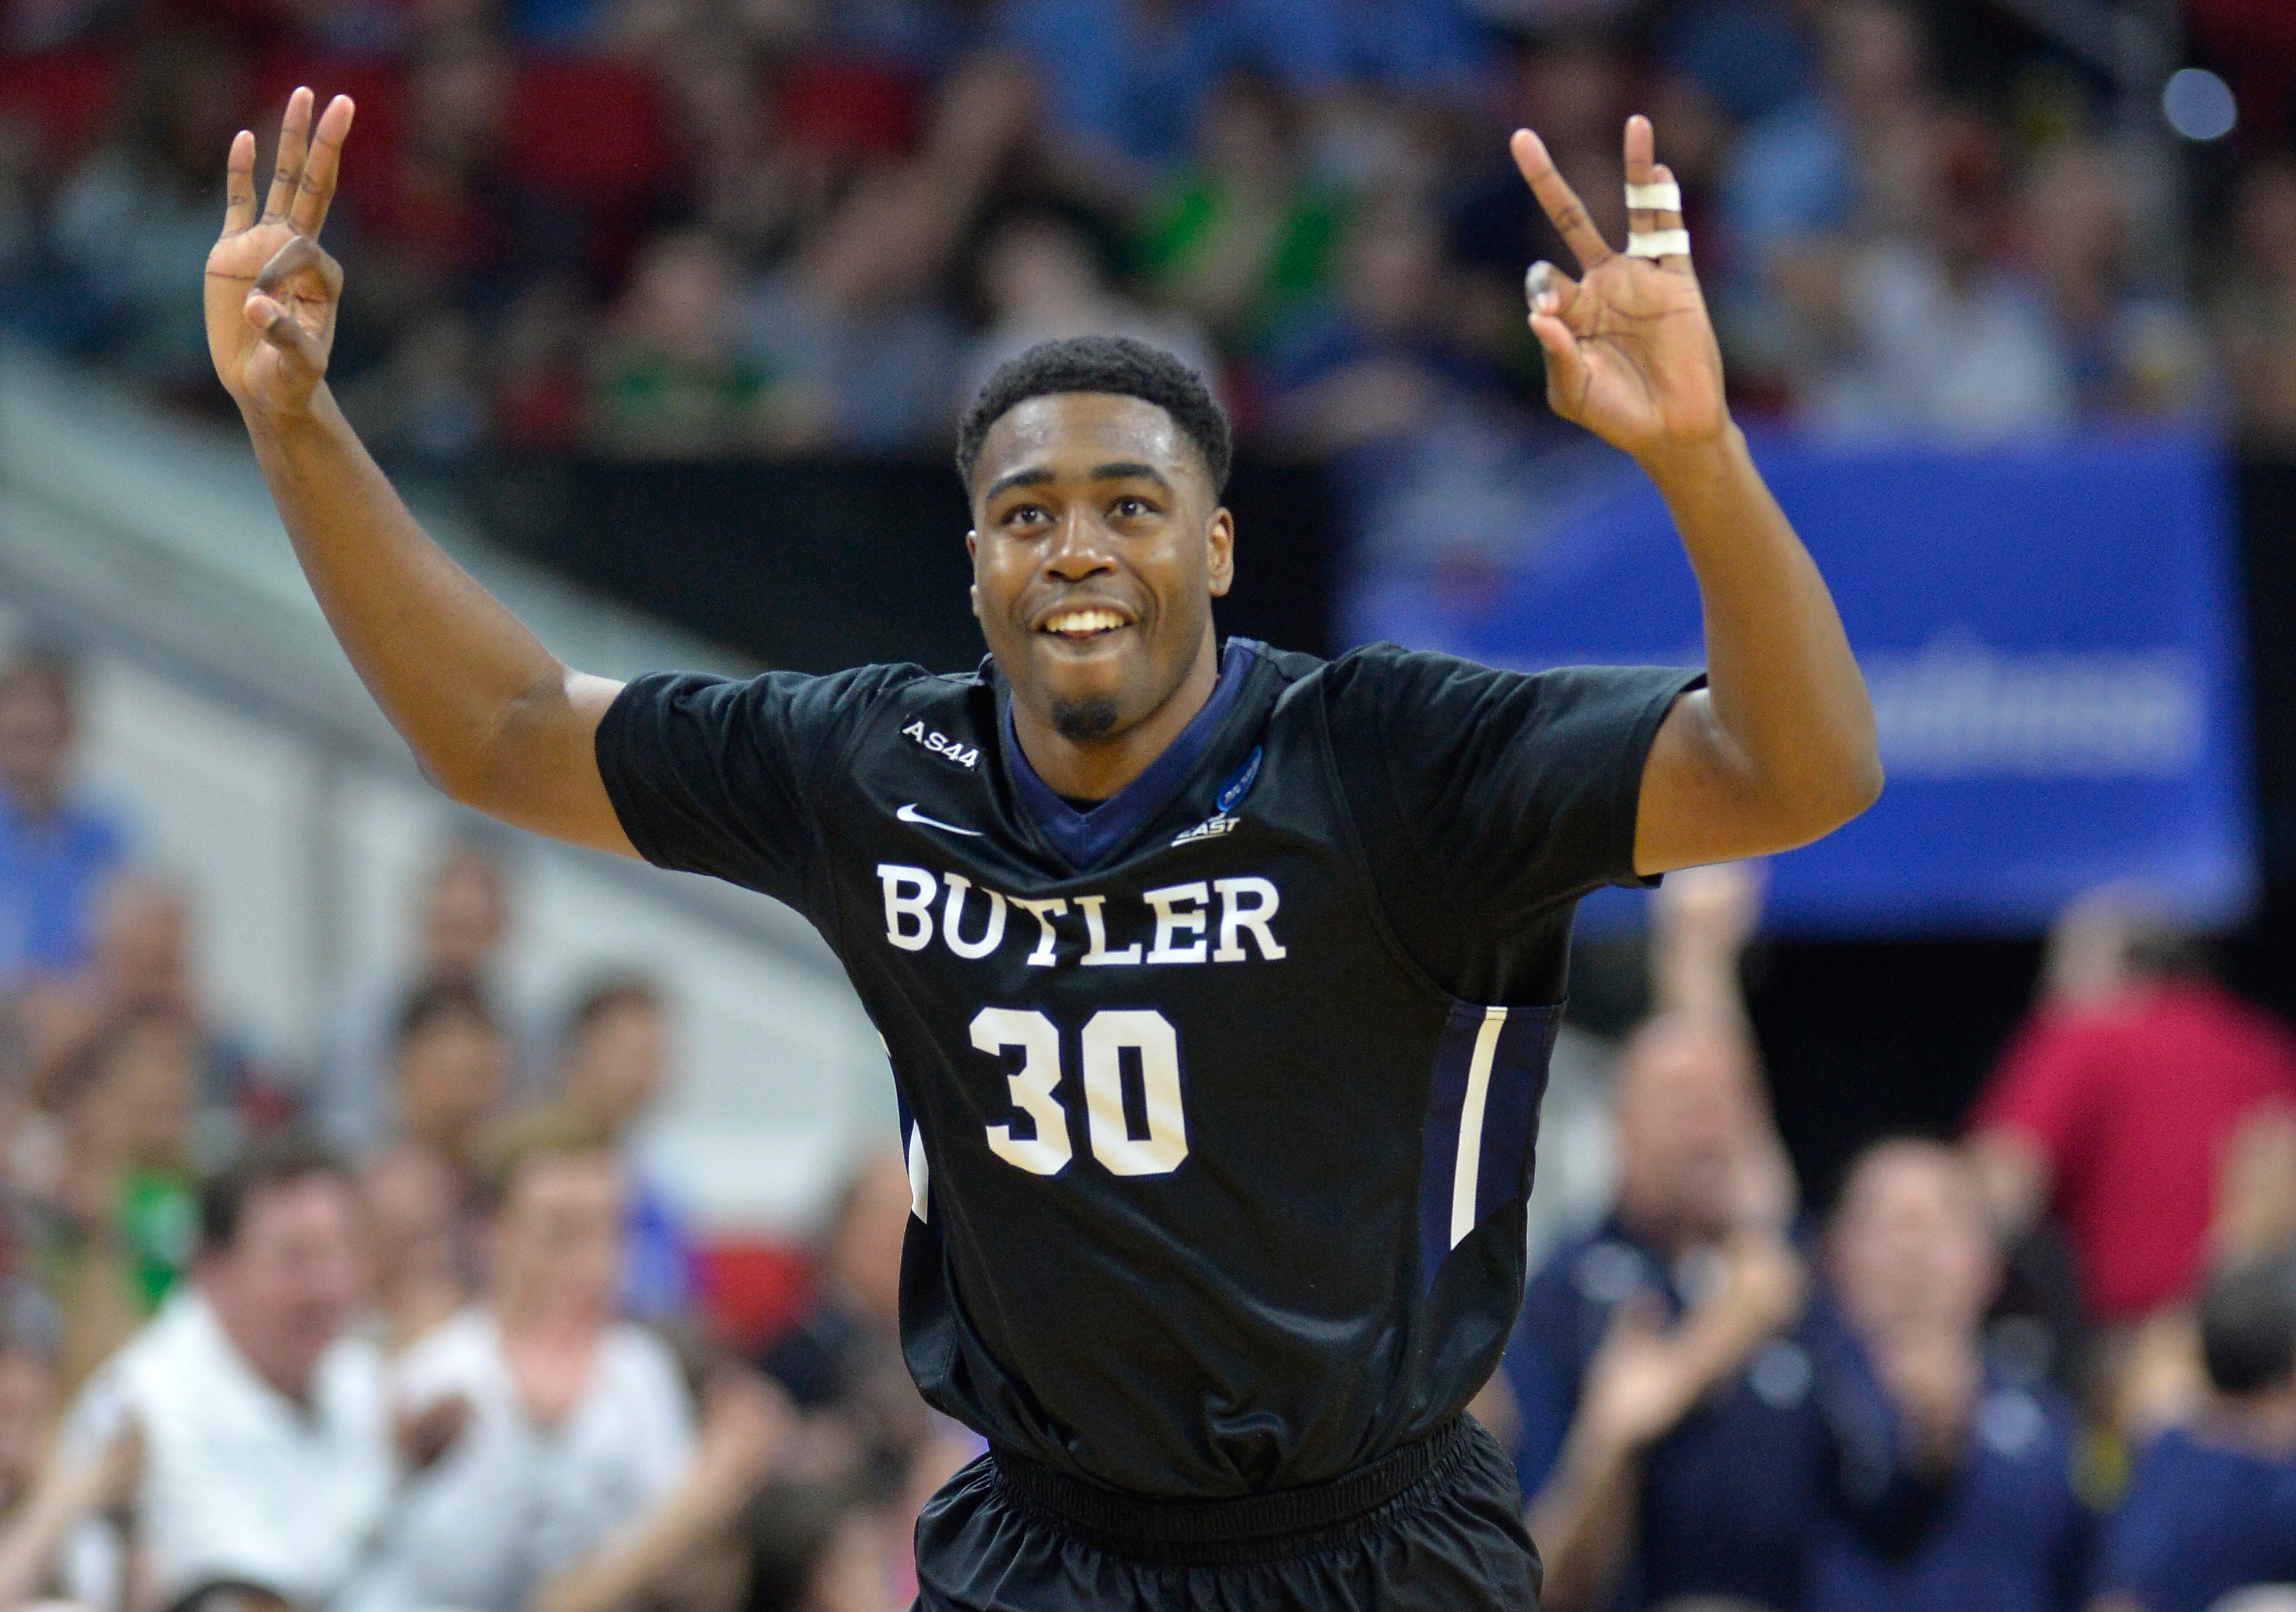 RALEIGH, NORTH CAROLINA - MARCH 17:  Kelan Martin #30 of the Butler Bulldogs reacts in the second half against the Texas Tech Red Raiders in the first round of the 2016 NCAA Men's Basketball Tournament at PNC Arena on March 17, 2016 in Raleigh, North Carolina.  (Photo by Grant Halverson/Getty Images)